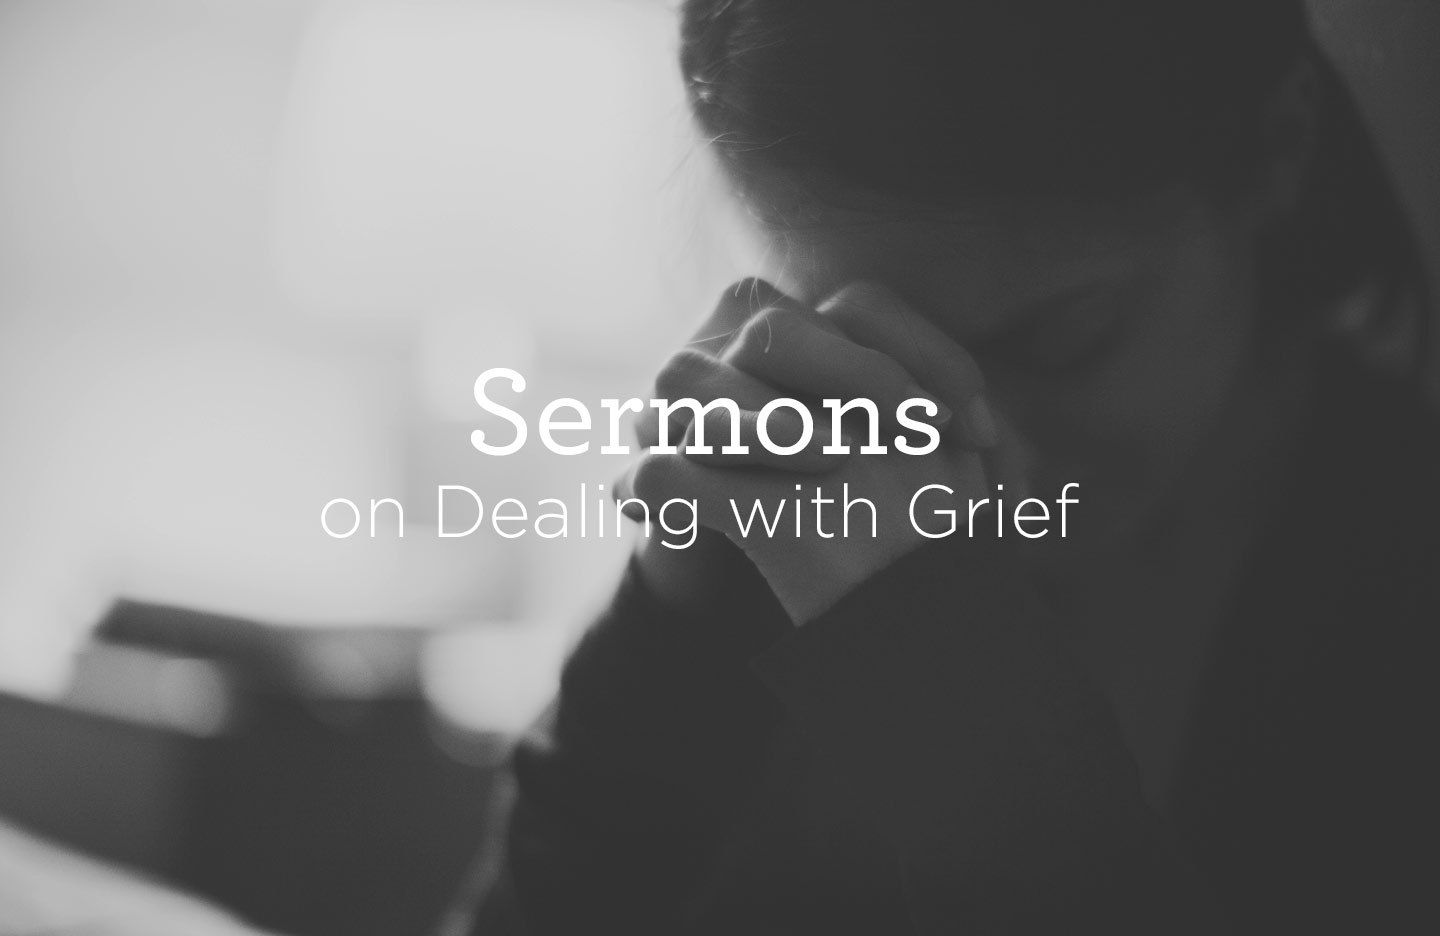 Sermons on Grief